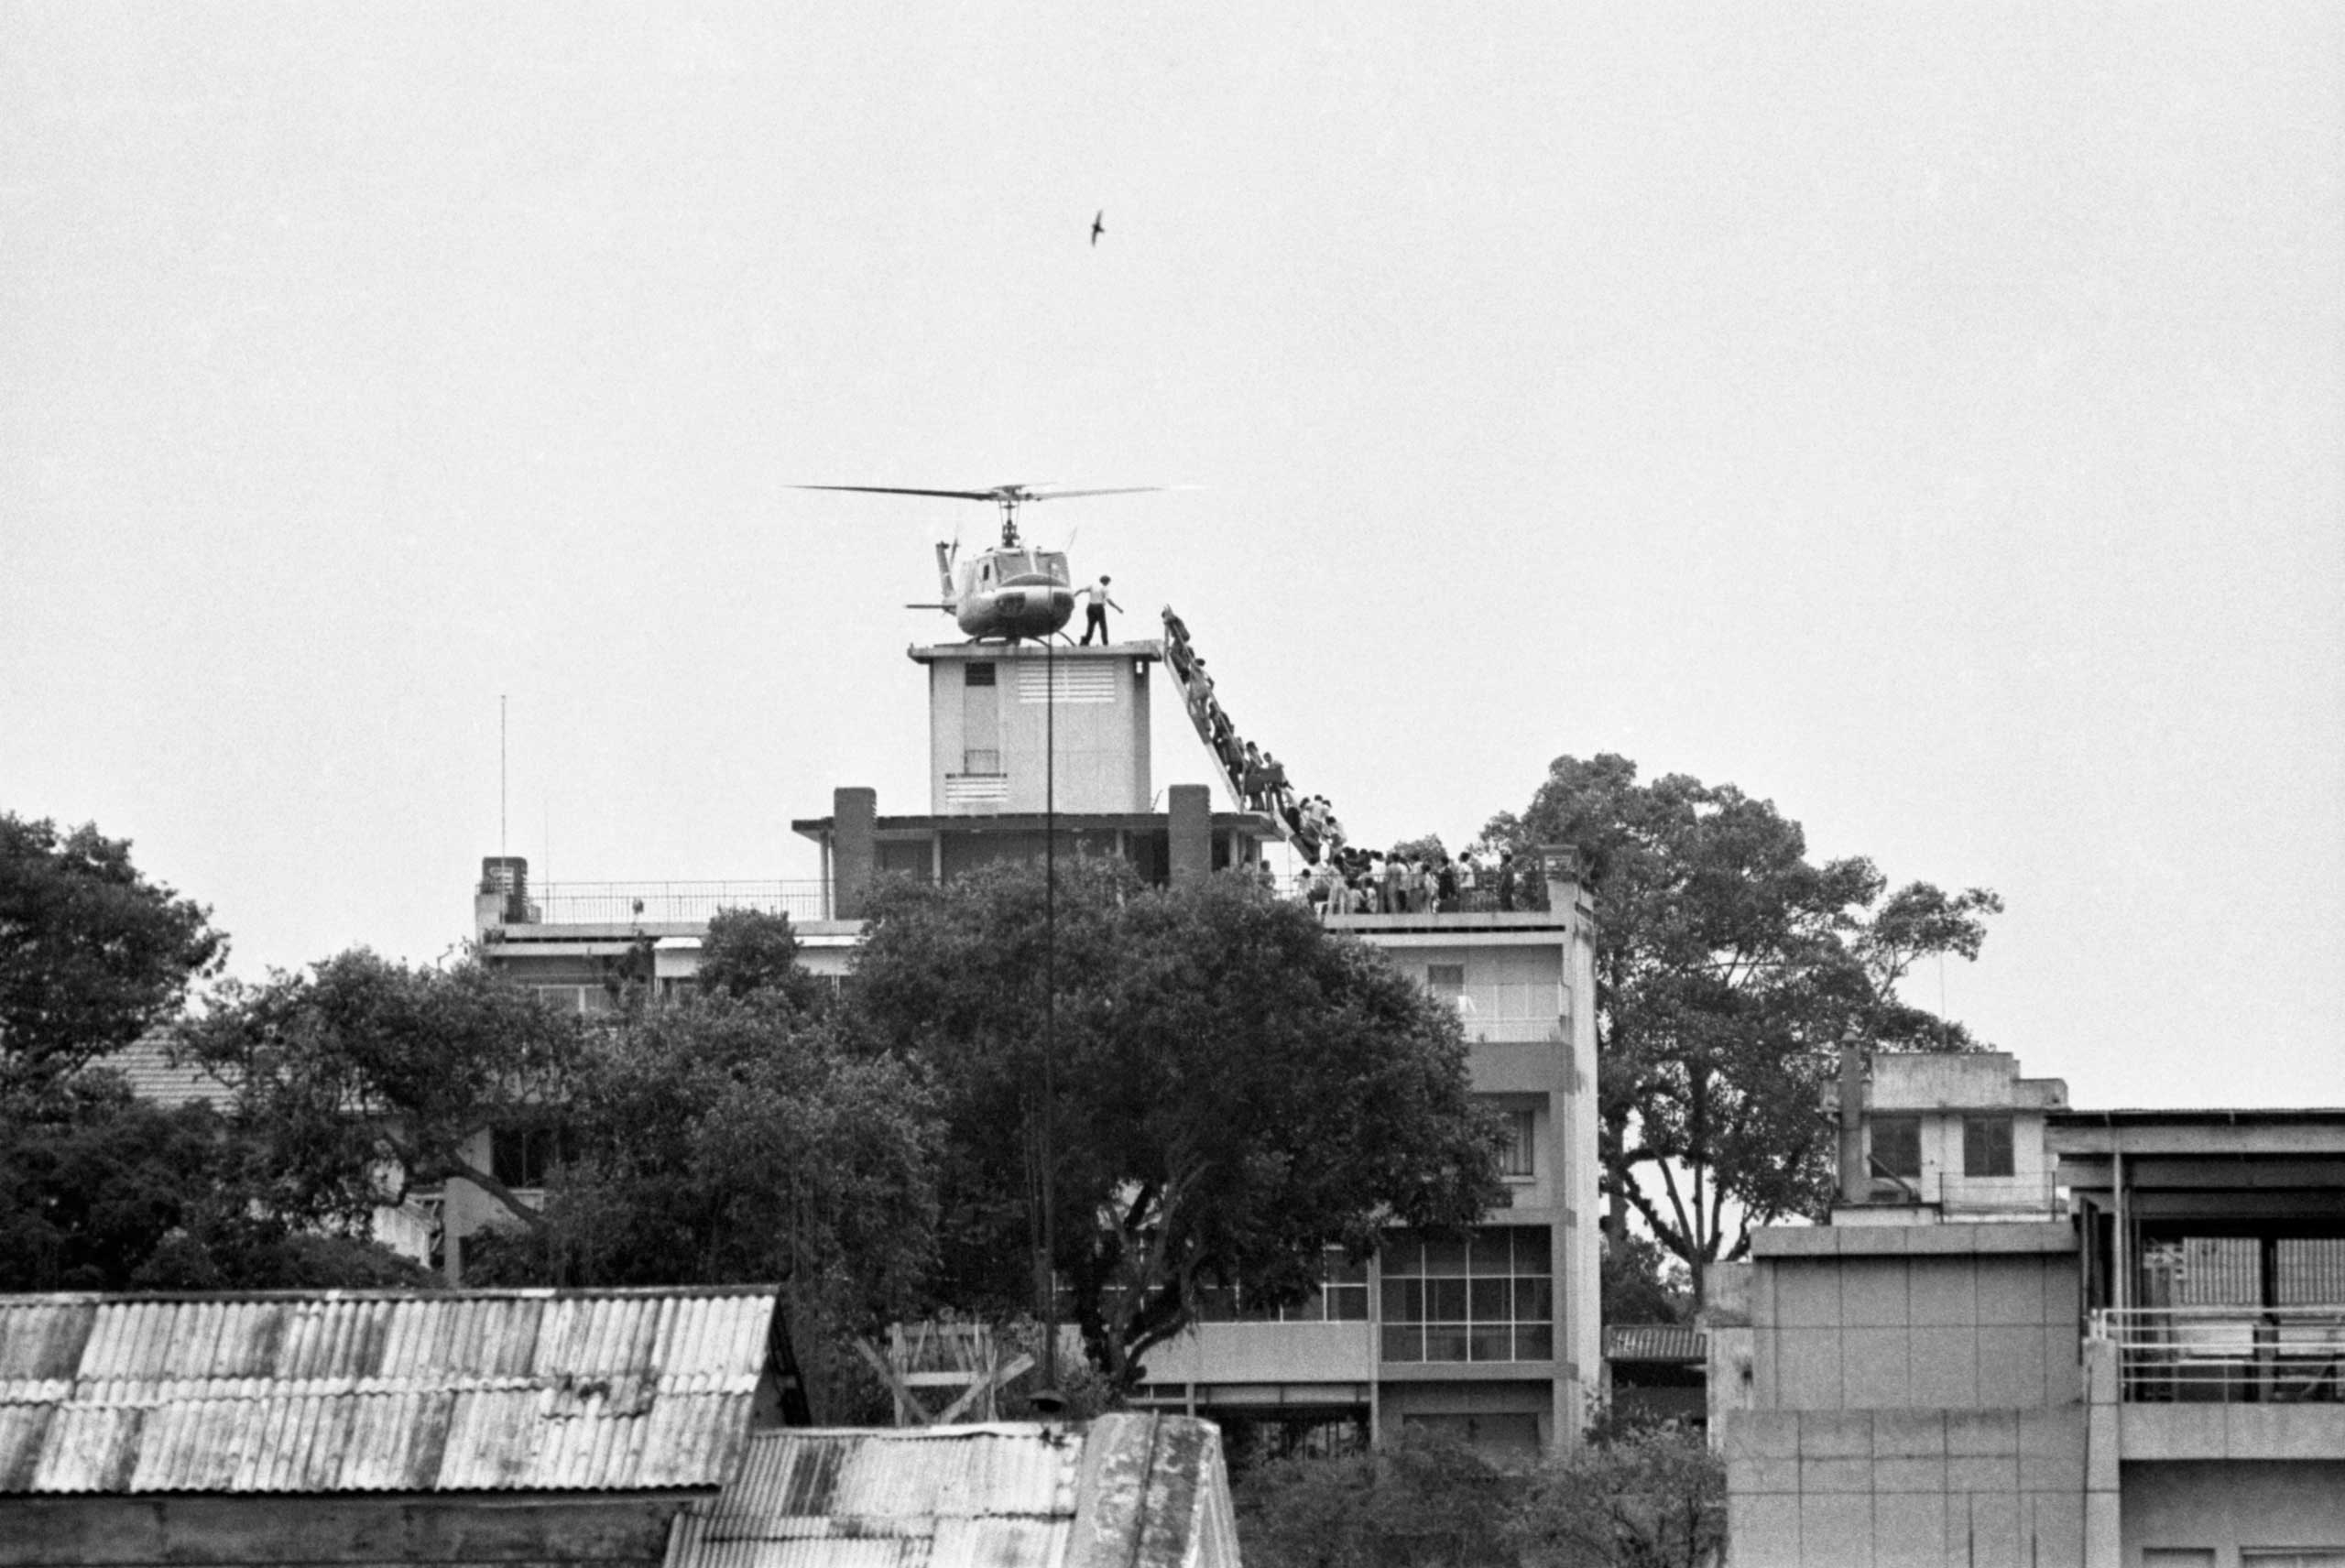 A CIA employee (probably O.B. Harnage) helps Vietnamese evacuees onto an Air America helicopter from the top of 22 Gia Long Street, a half mile from the U.S. Embassy on Apr. 25, 1975.